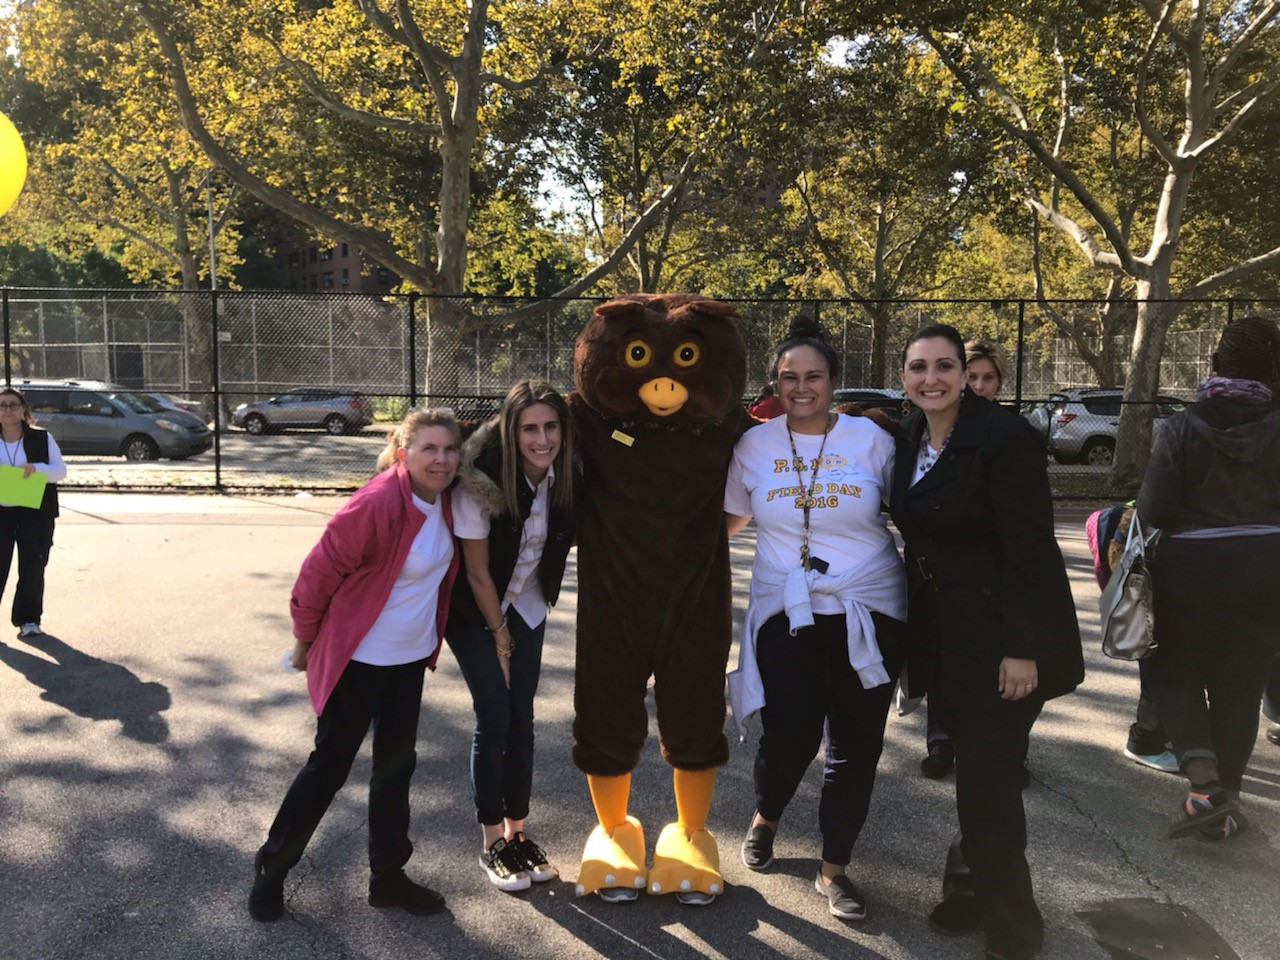 Staff with mascot